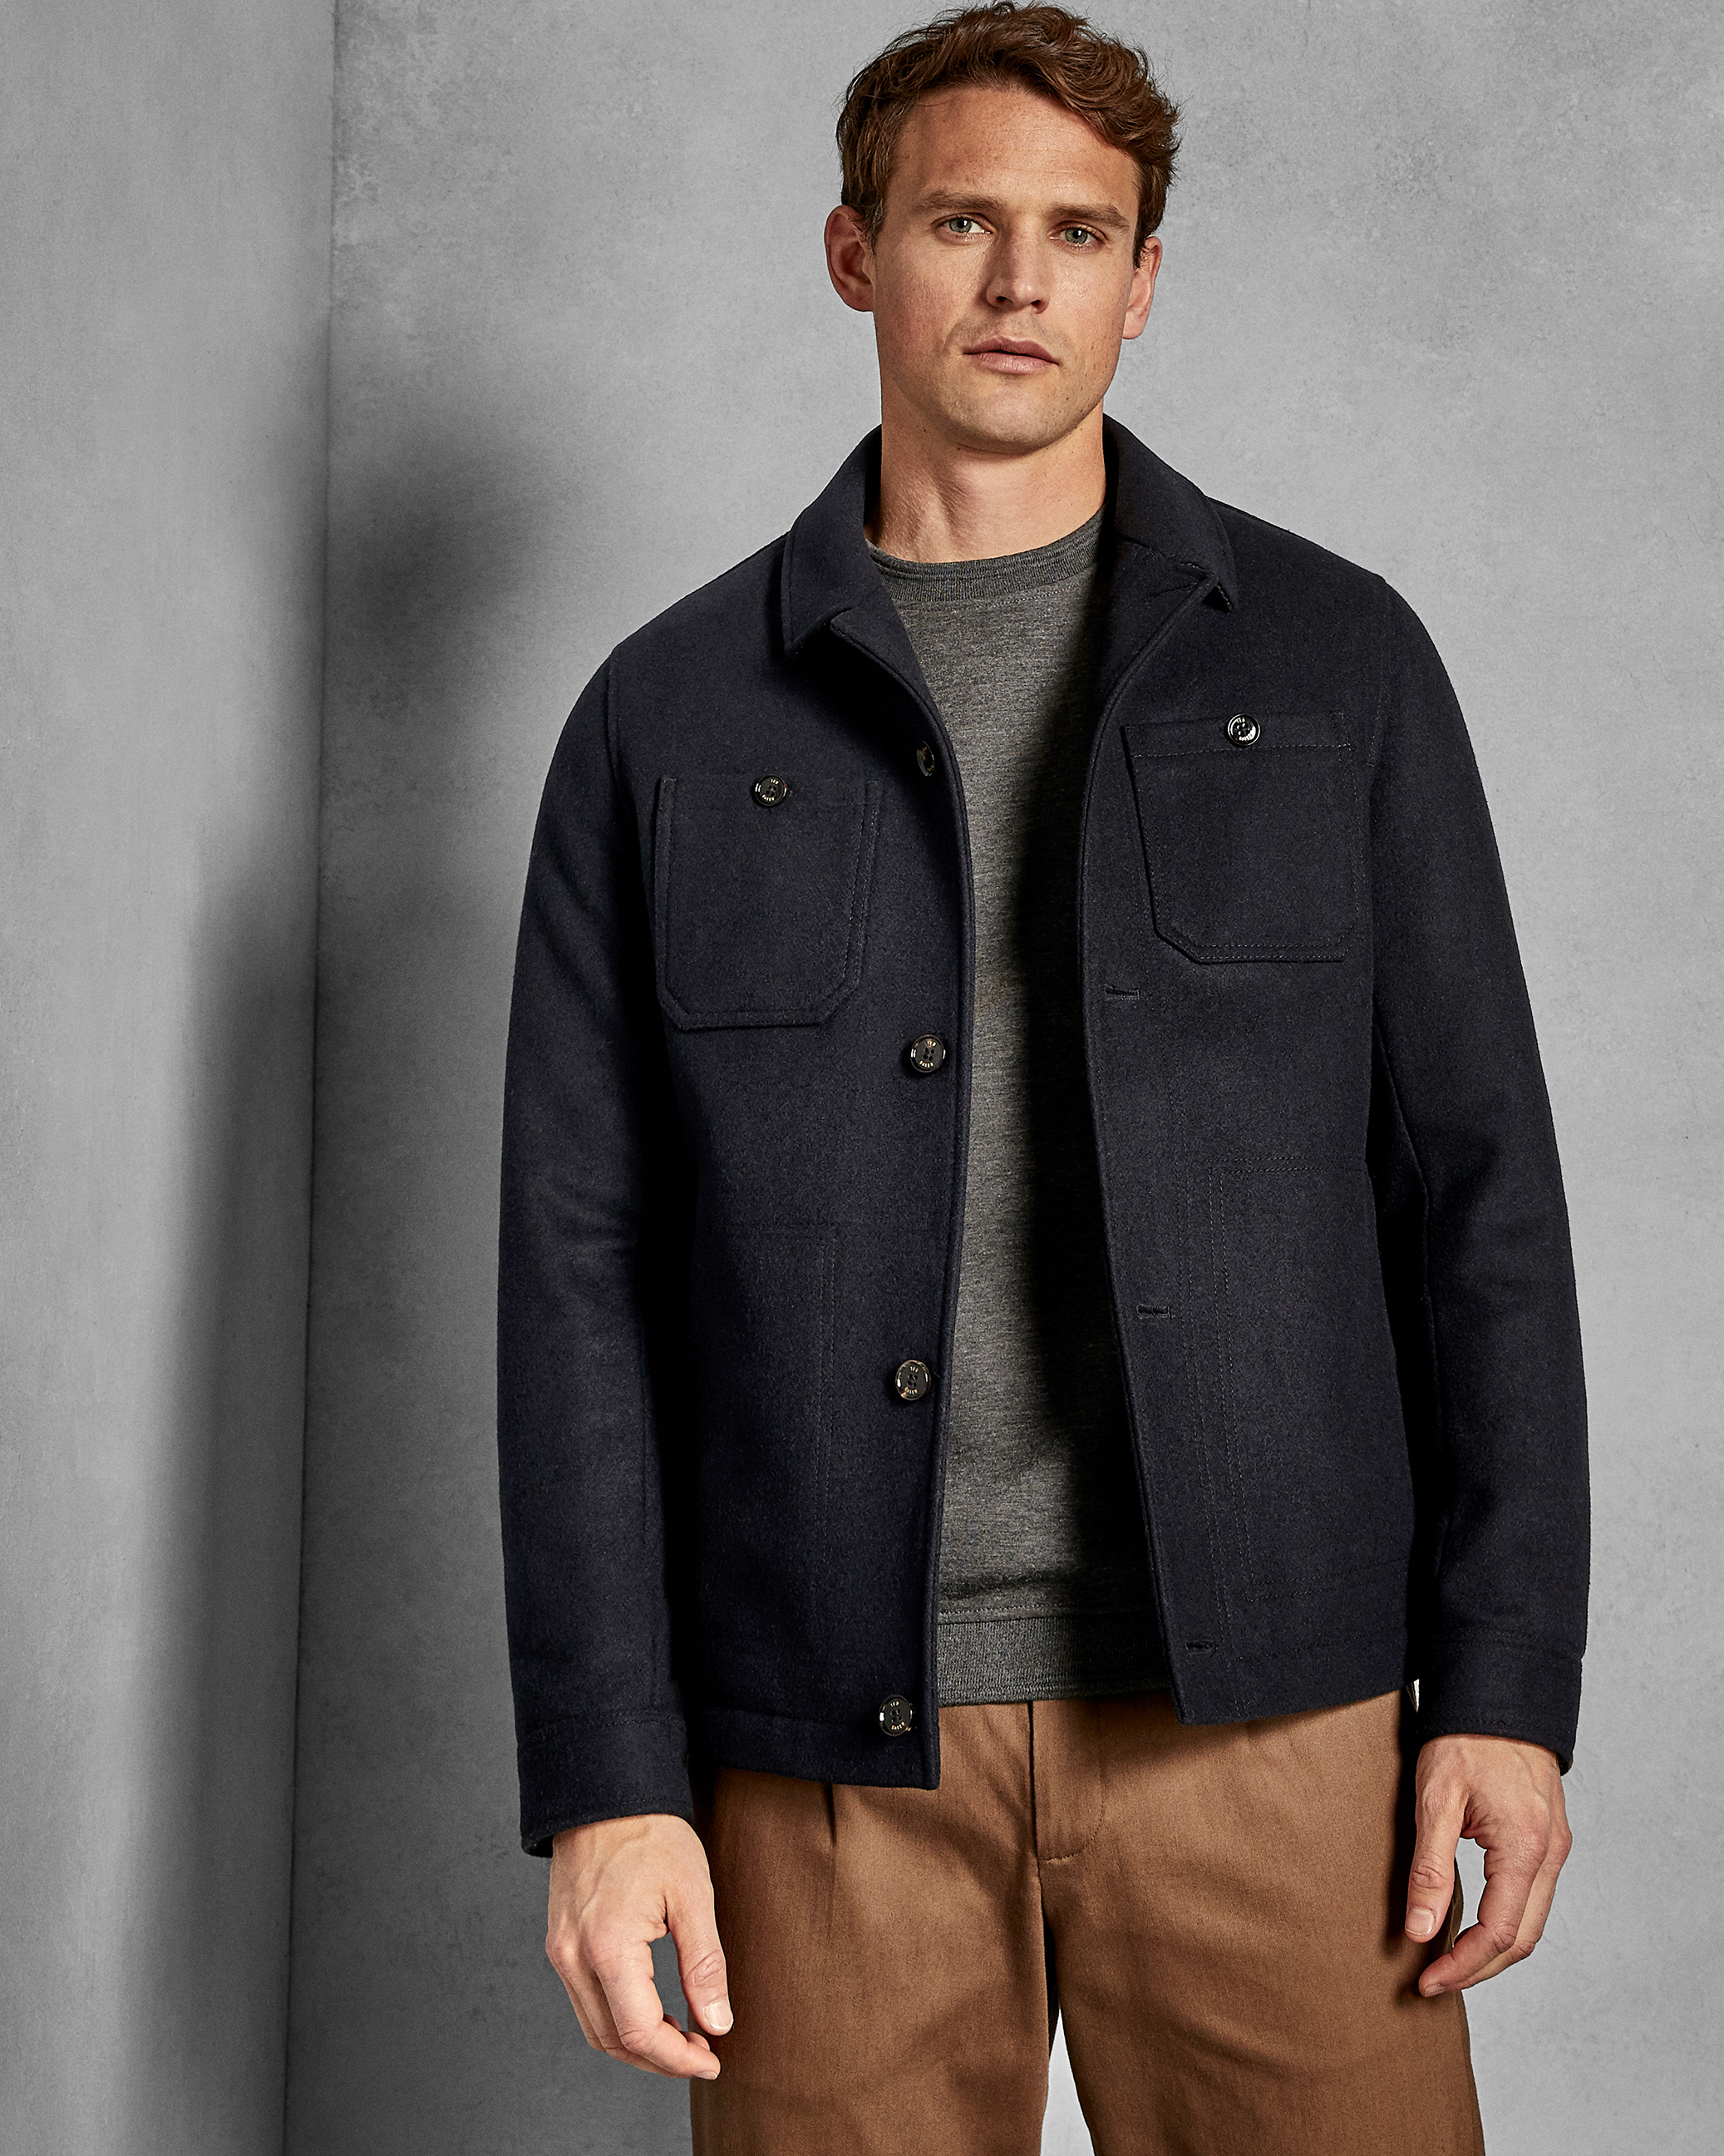 NEW* Ted Baker JONNES Mens Wool Jacket 2 in 1 with Hooded Removable Inner